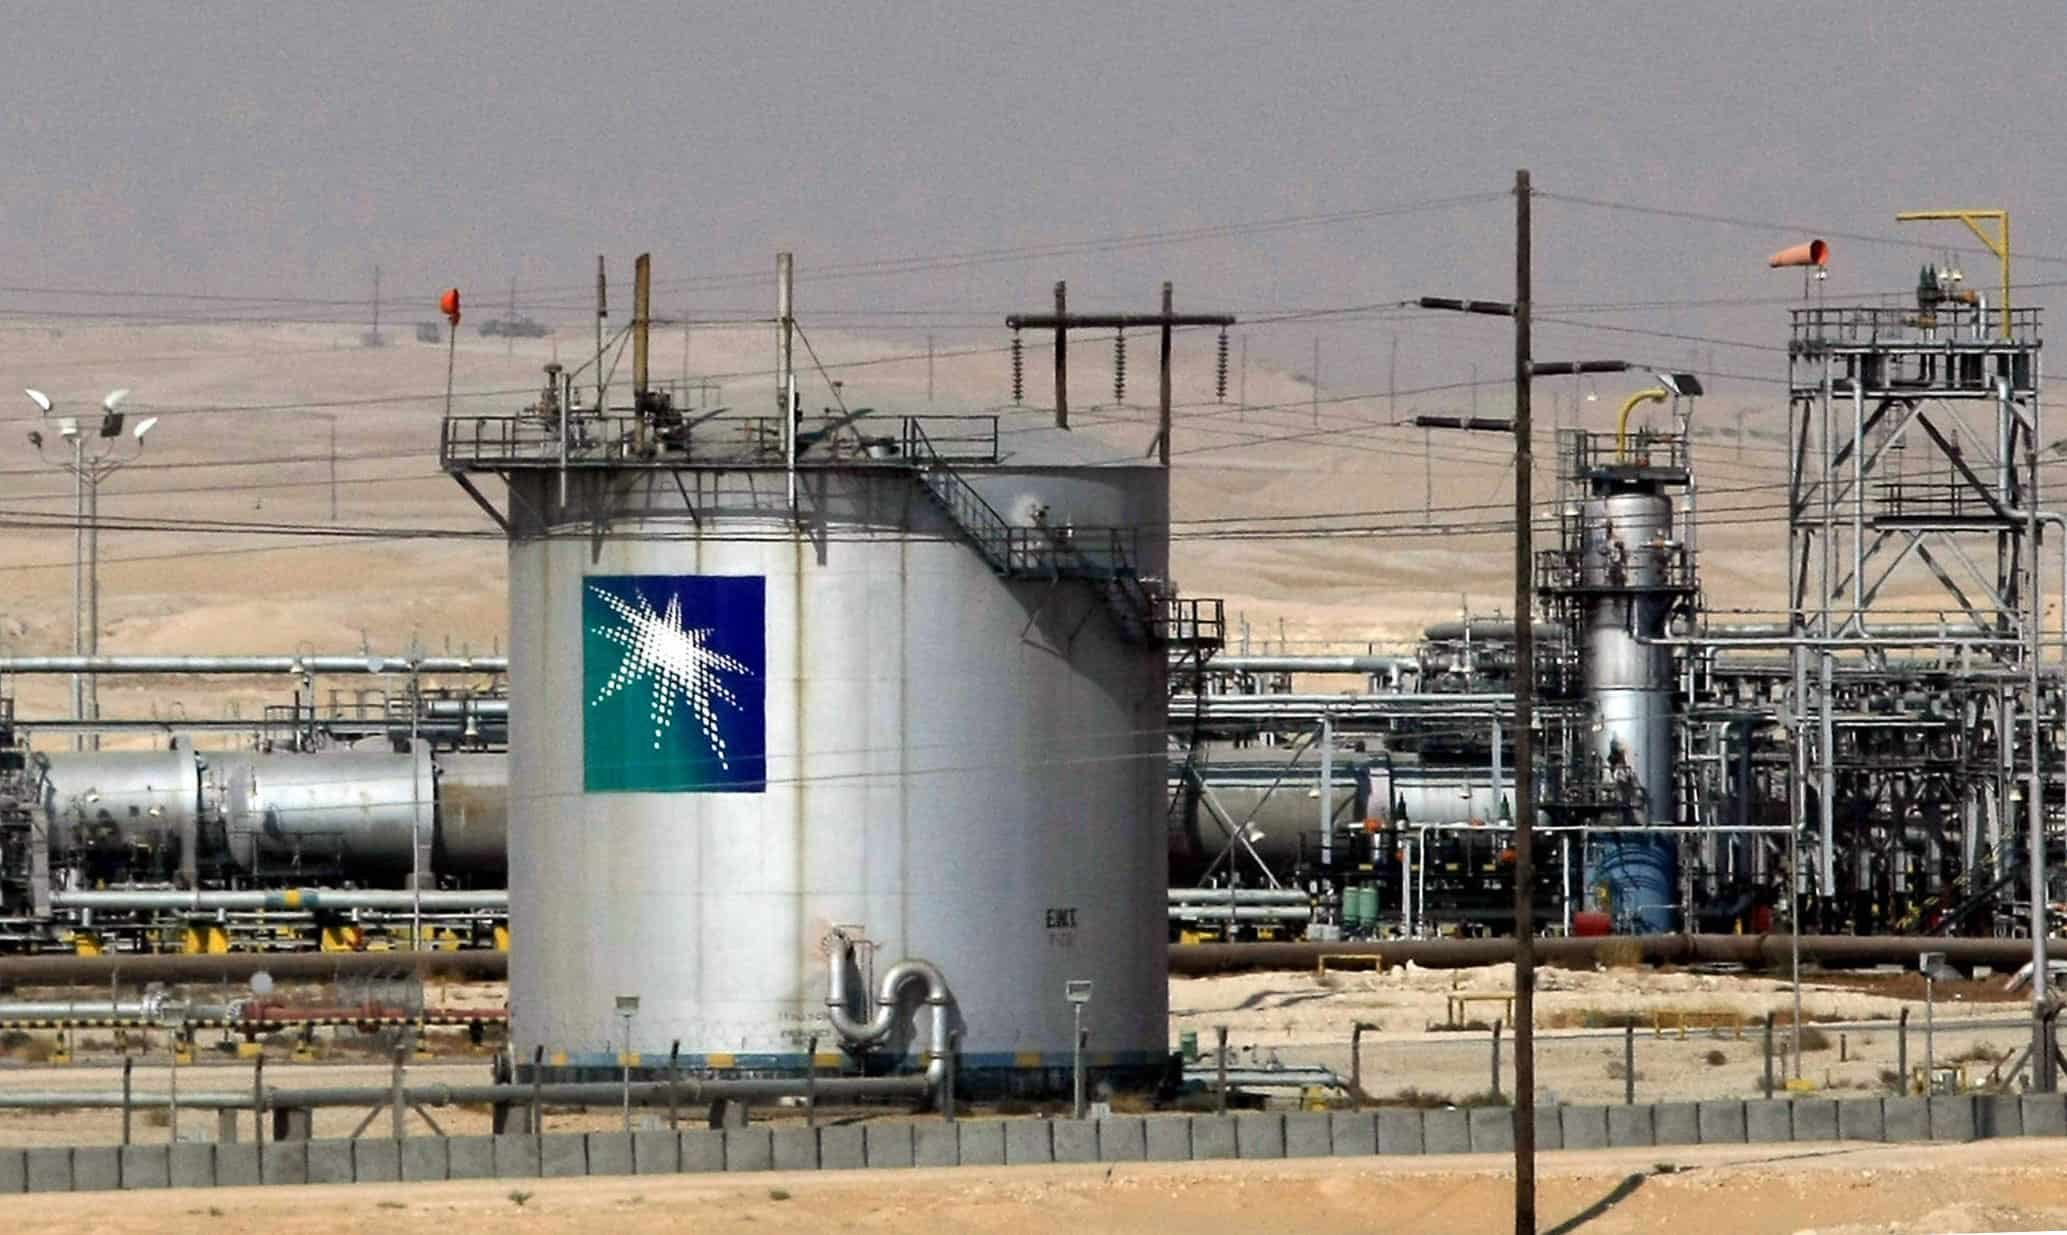 A general view shows the Saudi Aramco oil facility in Dammam city, 450 kms east of the Saudi capital Riyadh, 23 November 2007. Sky-rocketing oil prices that are within striking distance of 100 dollars a barrel have flooded the coffers of the six Gulf Cooperation Council (GCC) members -- Bahrain, Kuwait, Oman, Qatar, Saudi Arabia and United Arab Emirates -- which supply one fifth of world demand. AFP PHOTO/HASSAN AMMAR (Photo credit should read HASSAN AMMAR/AFP/Getty Images)